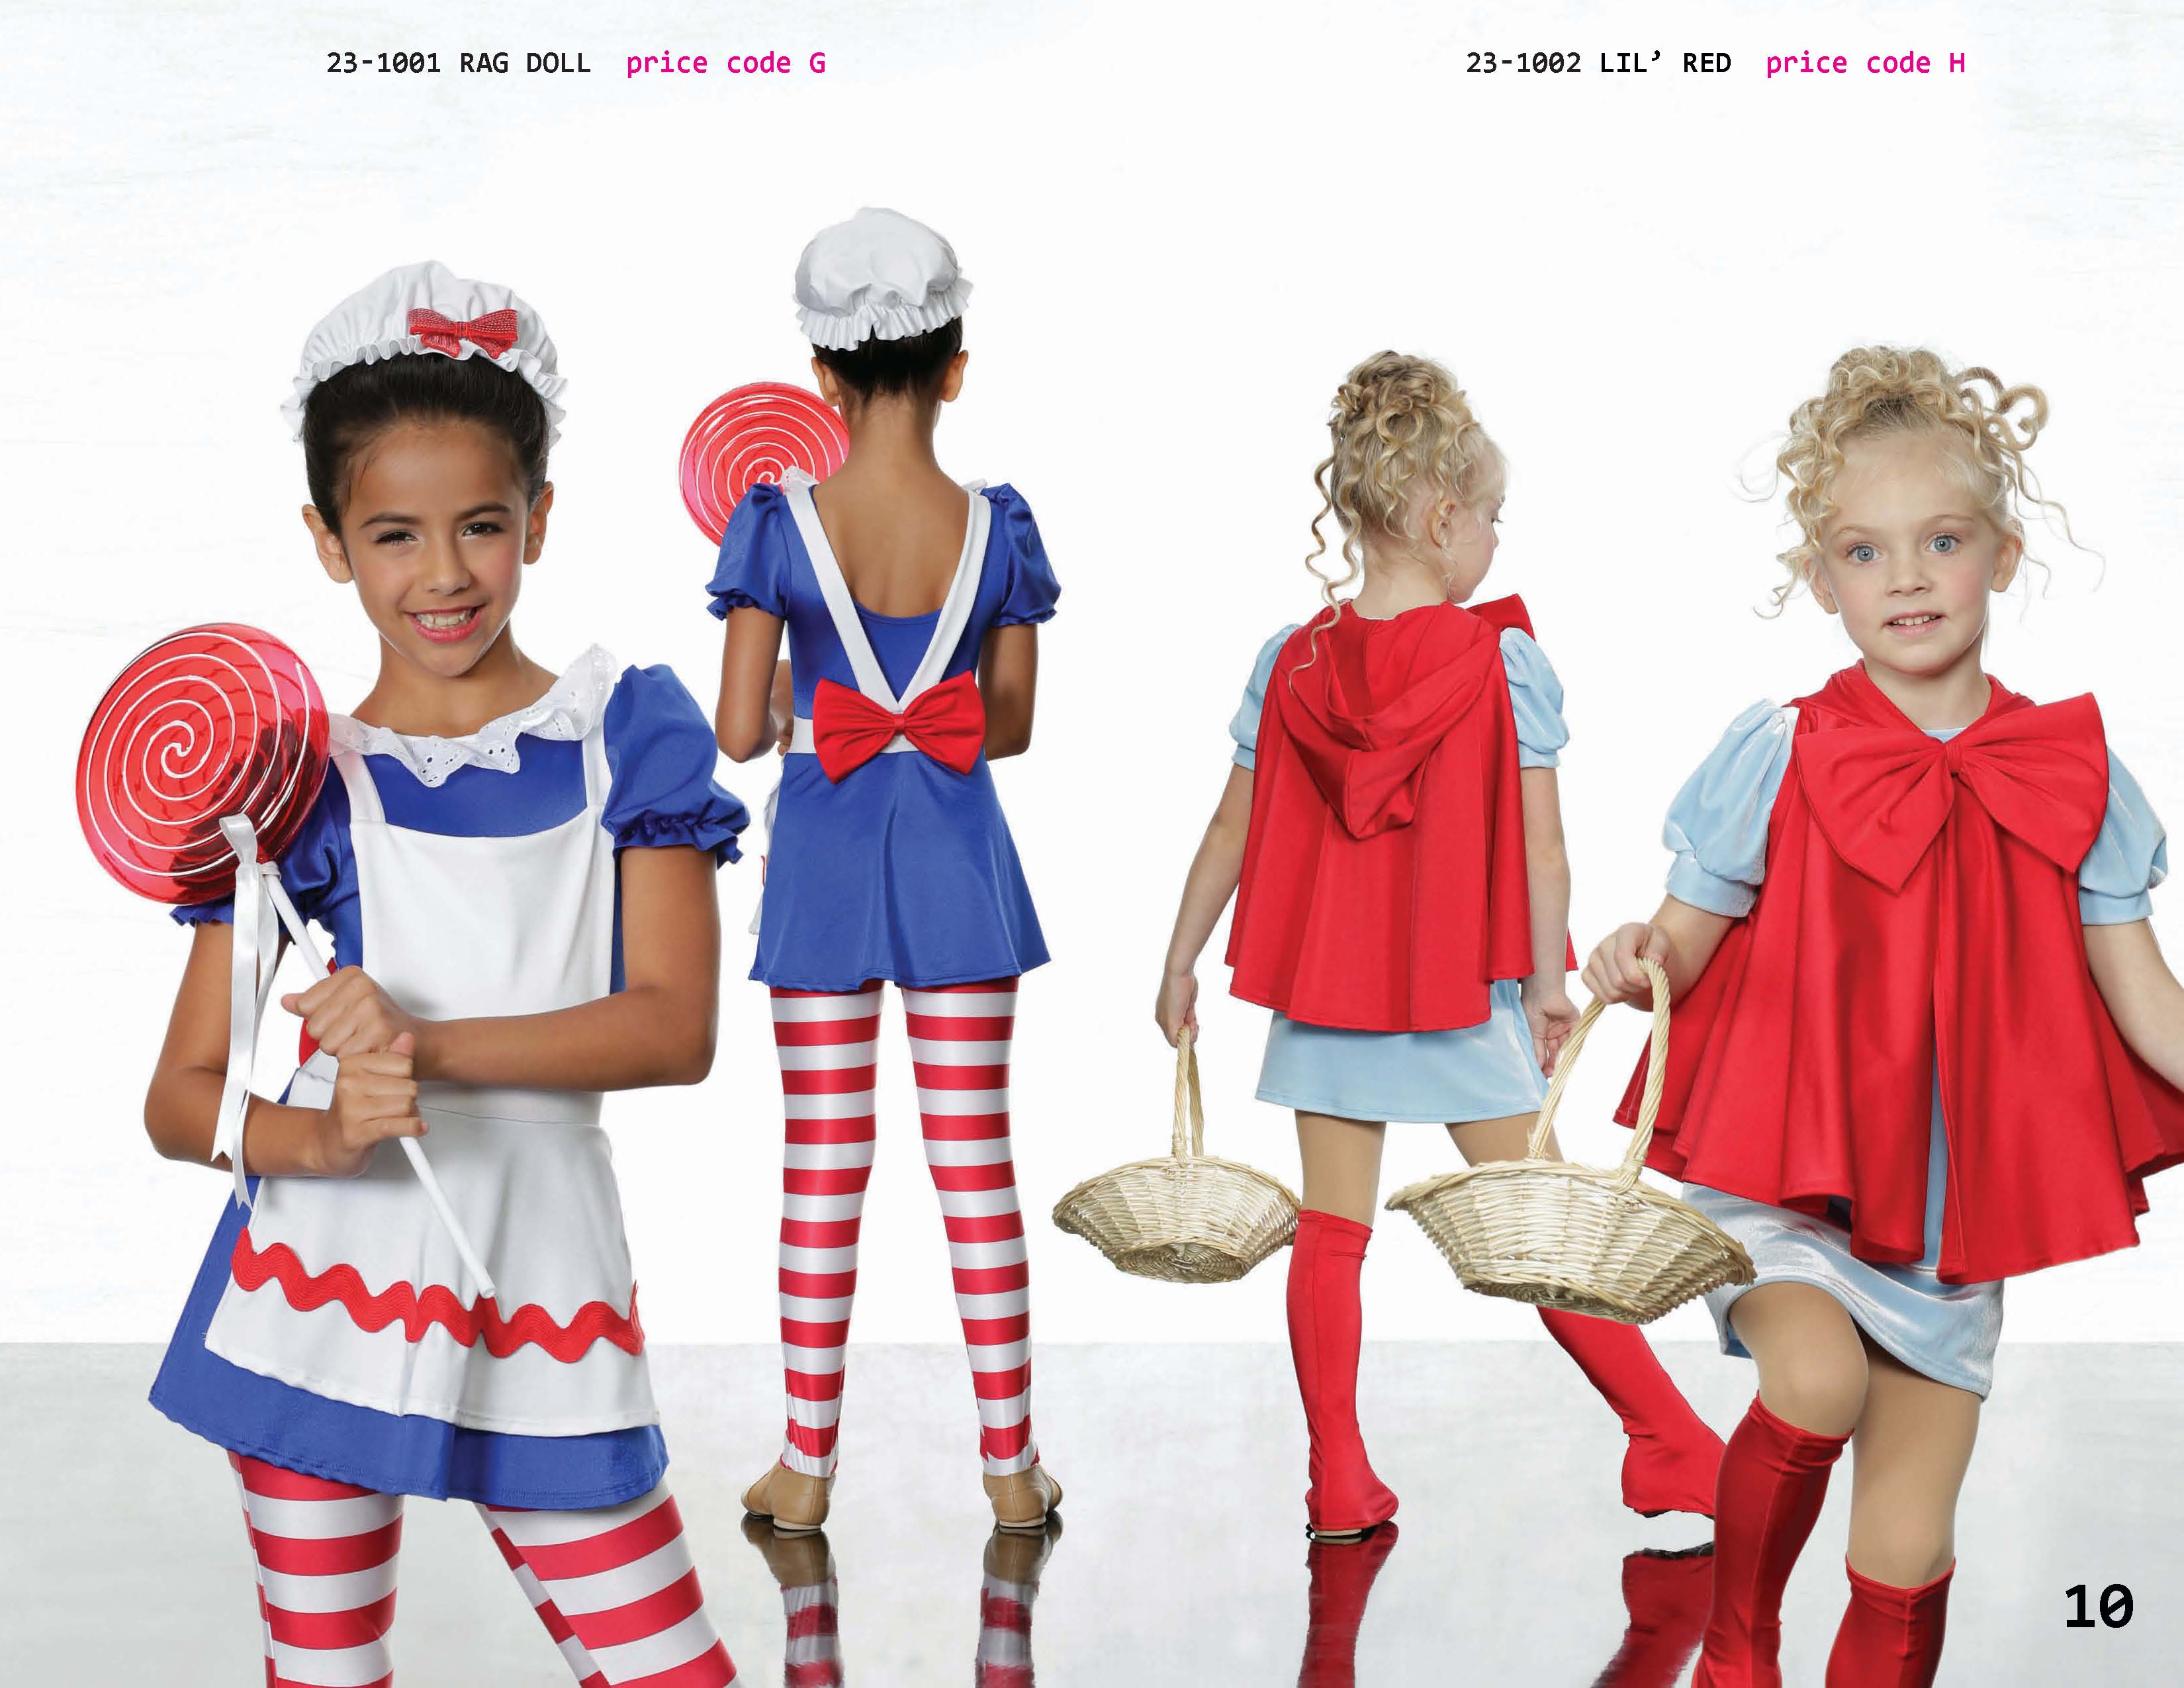 0f1f7c6ca469 ... Rag doll candy cane charactor little red riding hood dance recital  costume